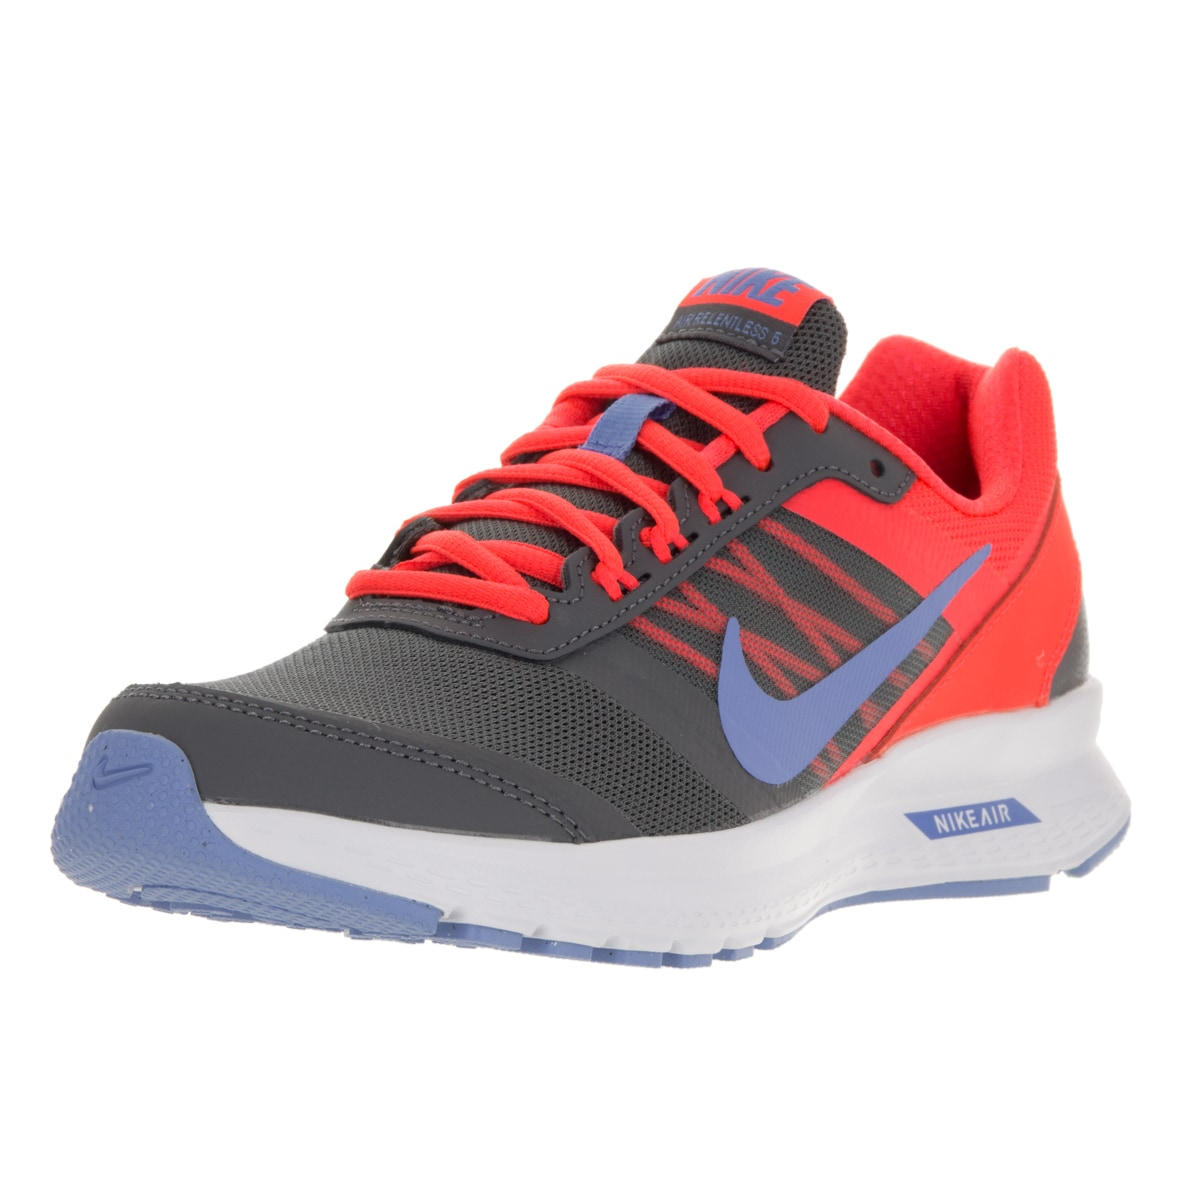 Nike Women's Air Relentless 5 Running Shoe